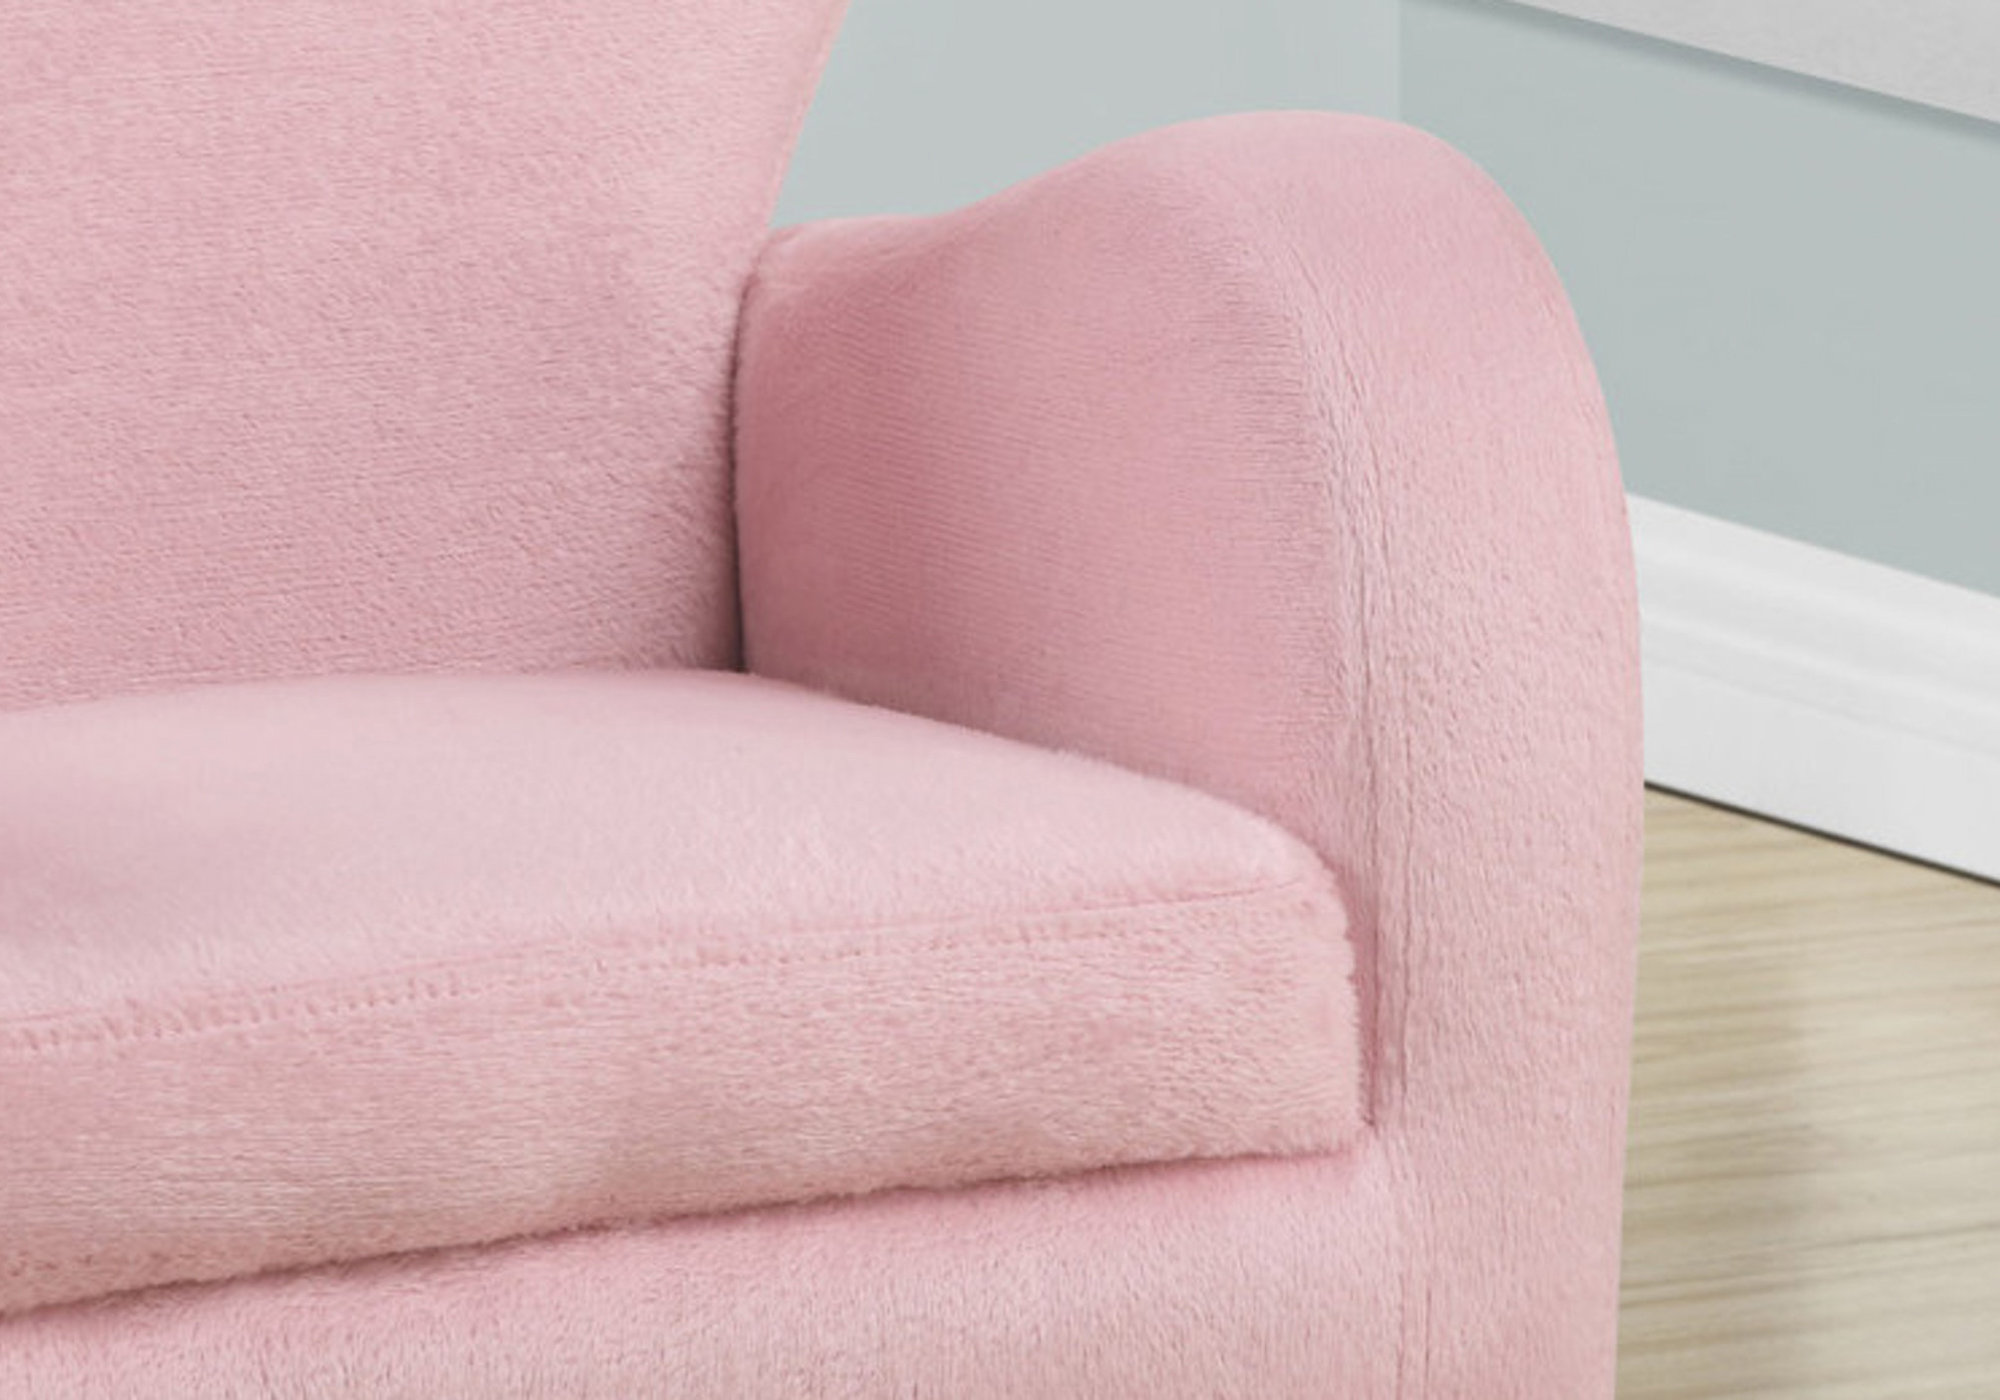 Juvenile Chair Fuzzy Pink Fabric Victoria Rose Decor